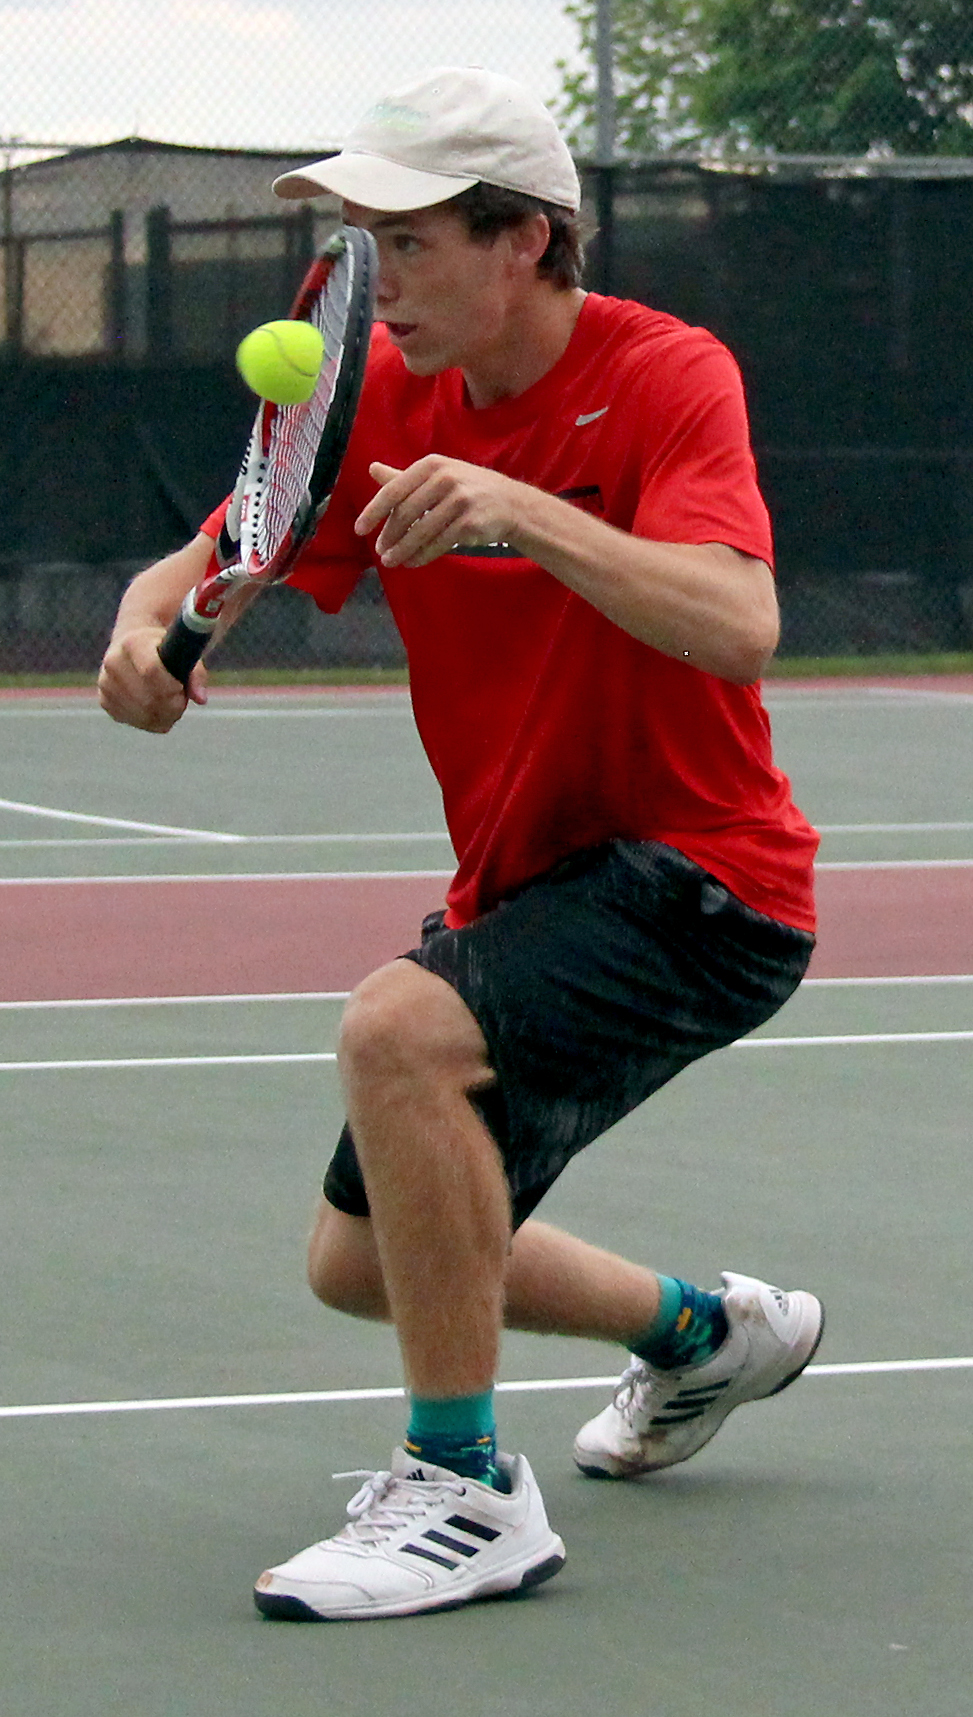 ROSS MARTIN/Citizen photo Park Hill senior Grant Martin hits a backhand volley during a doubles match in the Class 2 District 16 championship match Thursday, May 11 at Barry Park in Kansas City, Mo.